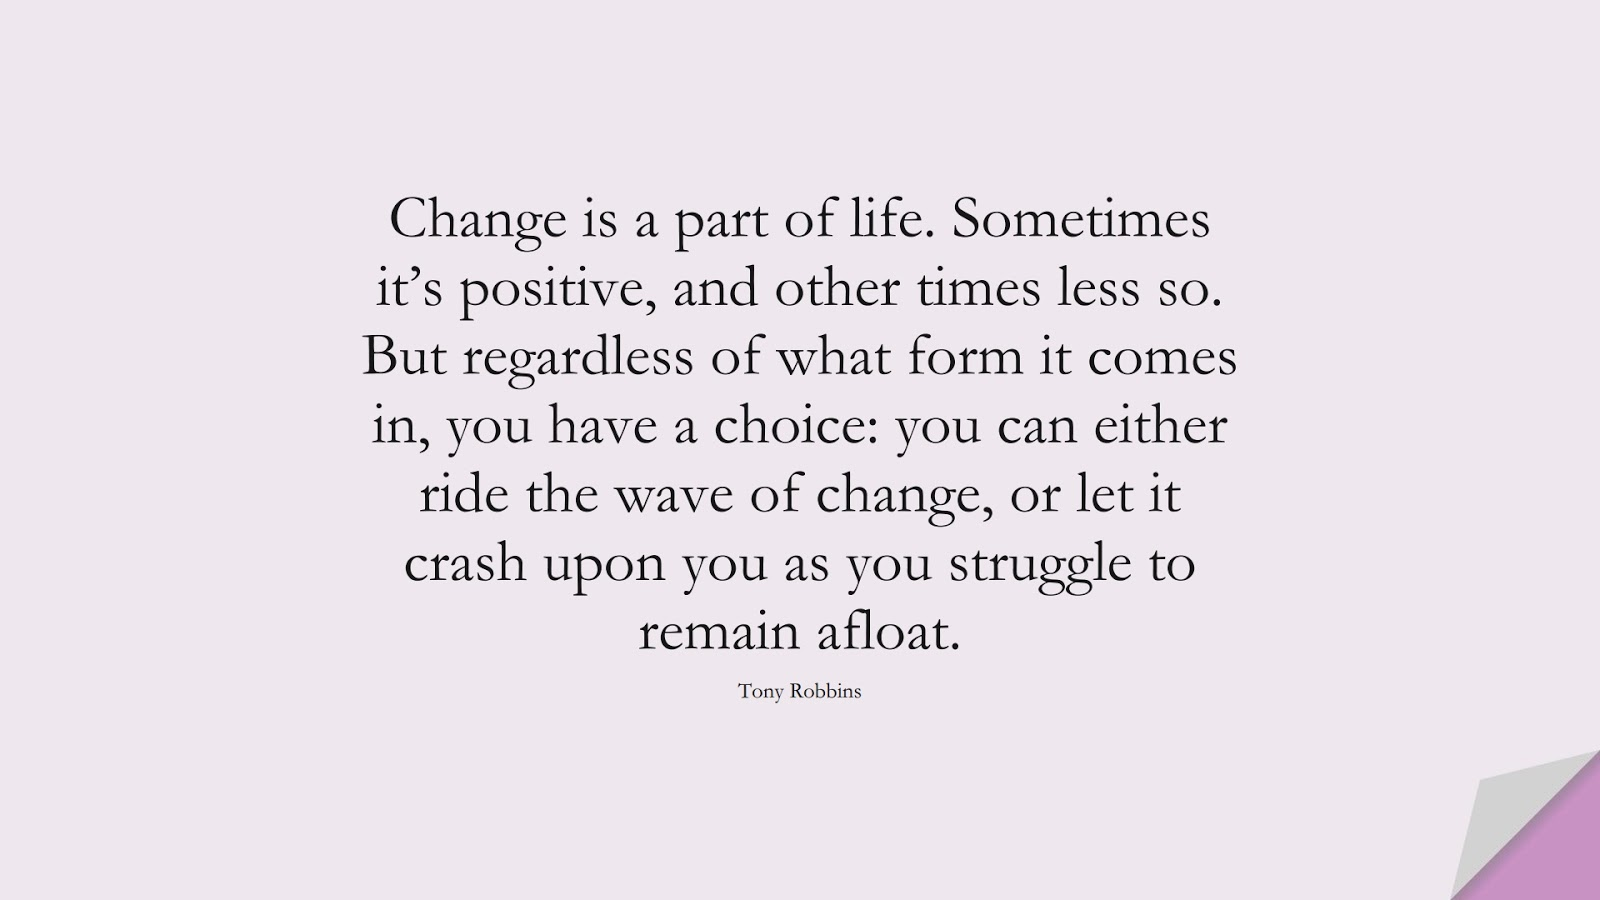 Change is a part of life. Sometimes it's positive, and other times less so. But regardless of what form it comes in, you have a choice: you can either ride the wave of change, or let it crash upon you as you struggle to remain afloat. (Tony Robbins);  #PositiveQuotes